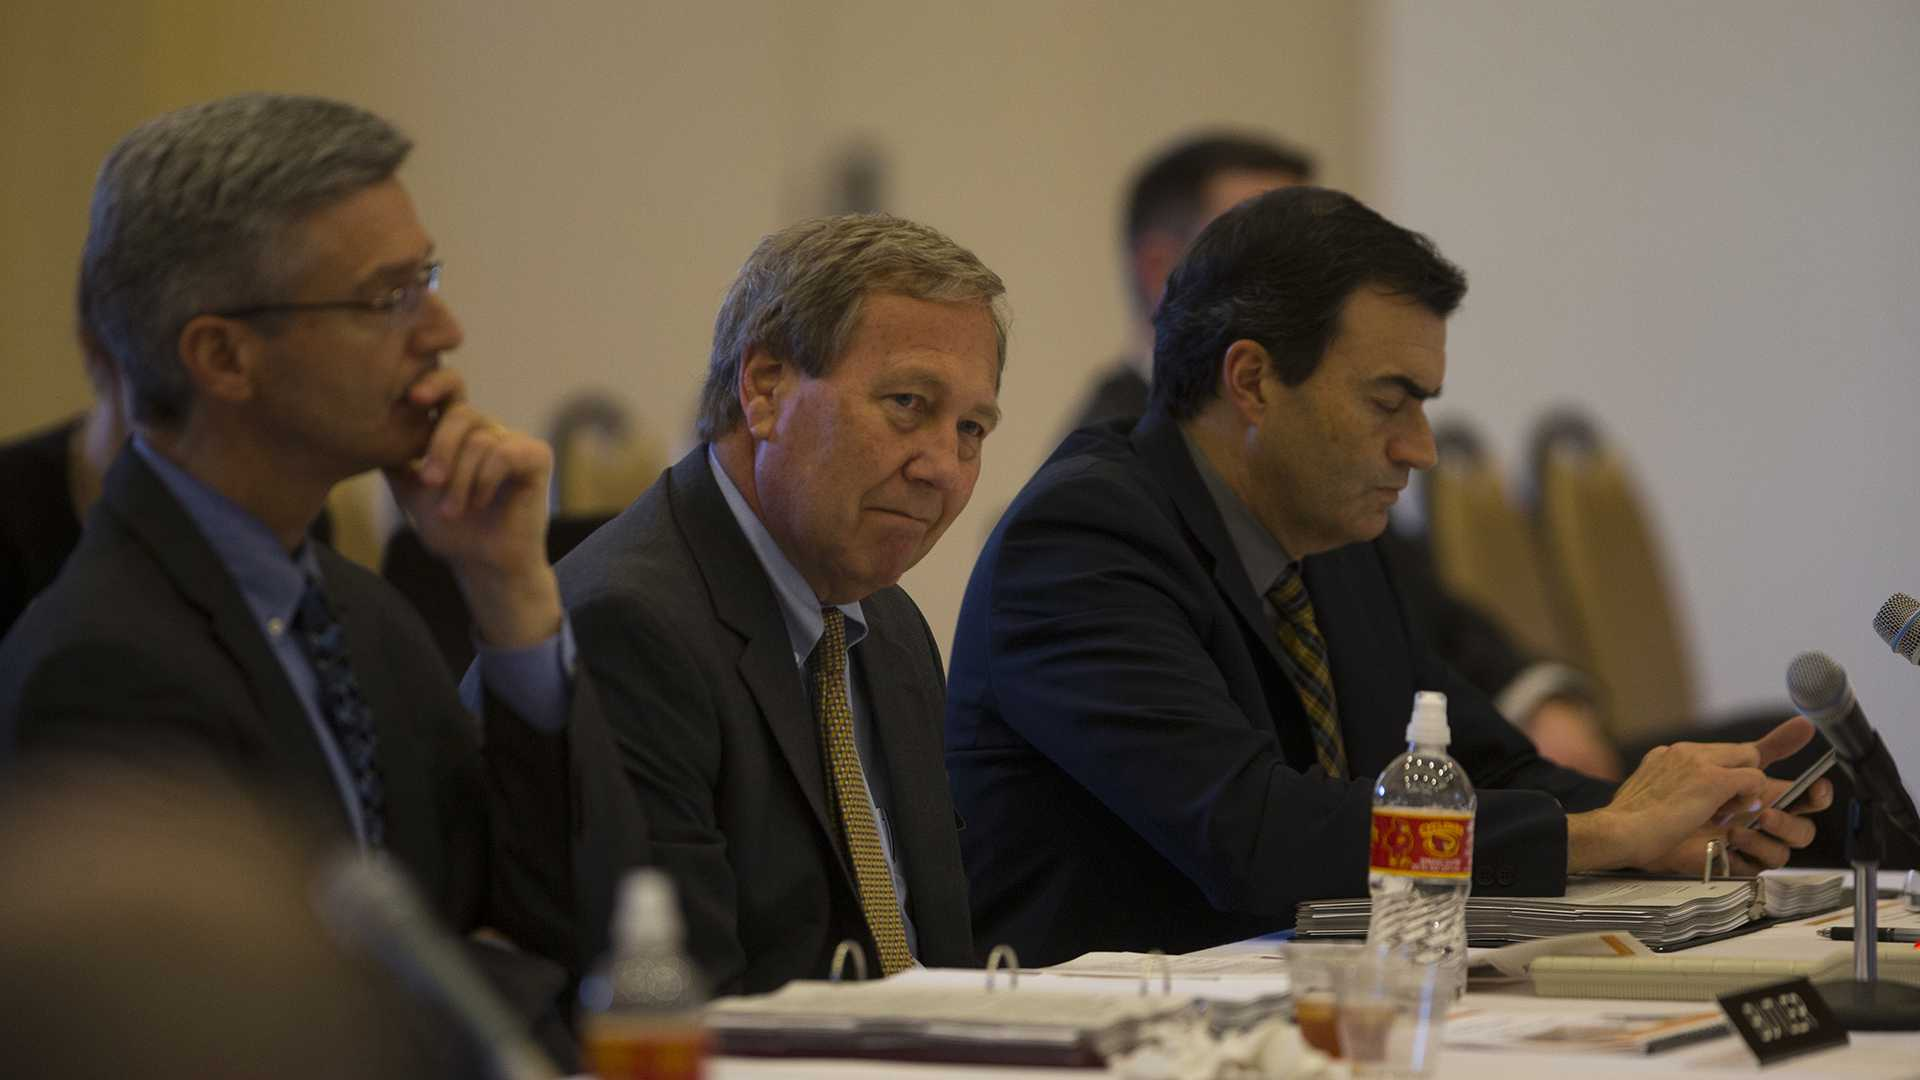 University of Iowa President Bruce Harreld listens during a meeting in the Reiman Ballroom of the ISU Alumni Center in Ames on Wednesday, Feb. 22, 2017. The Board of Regents will have a full board meeting on Feb. 23. (The Daily Iowan/Joseph Cress)